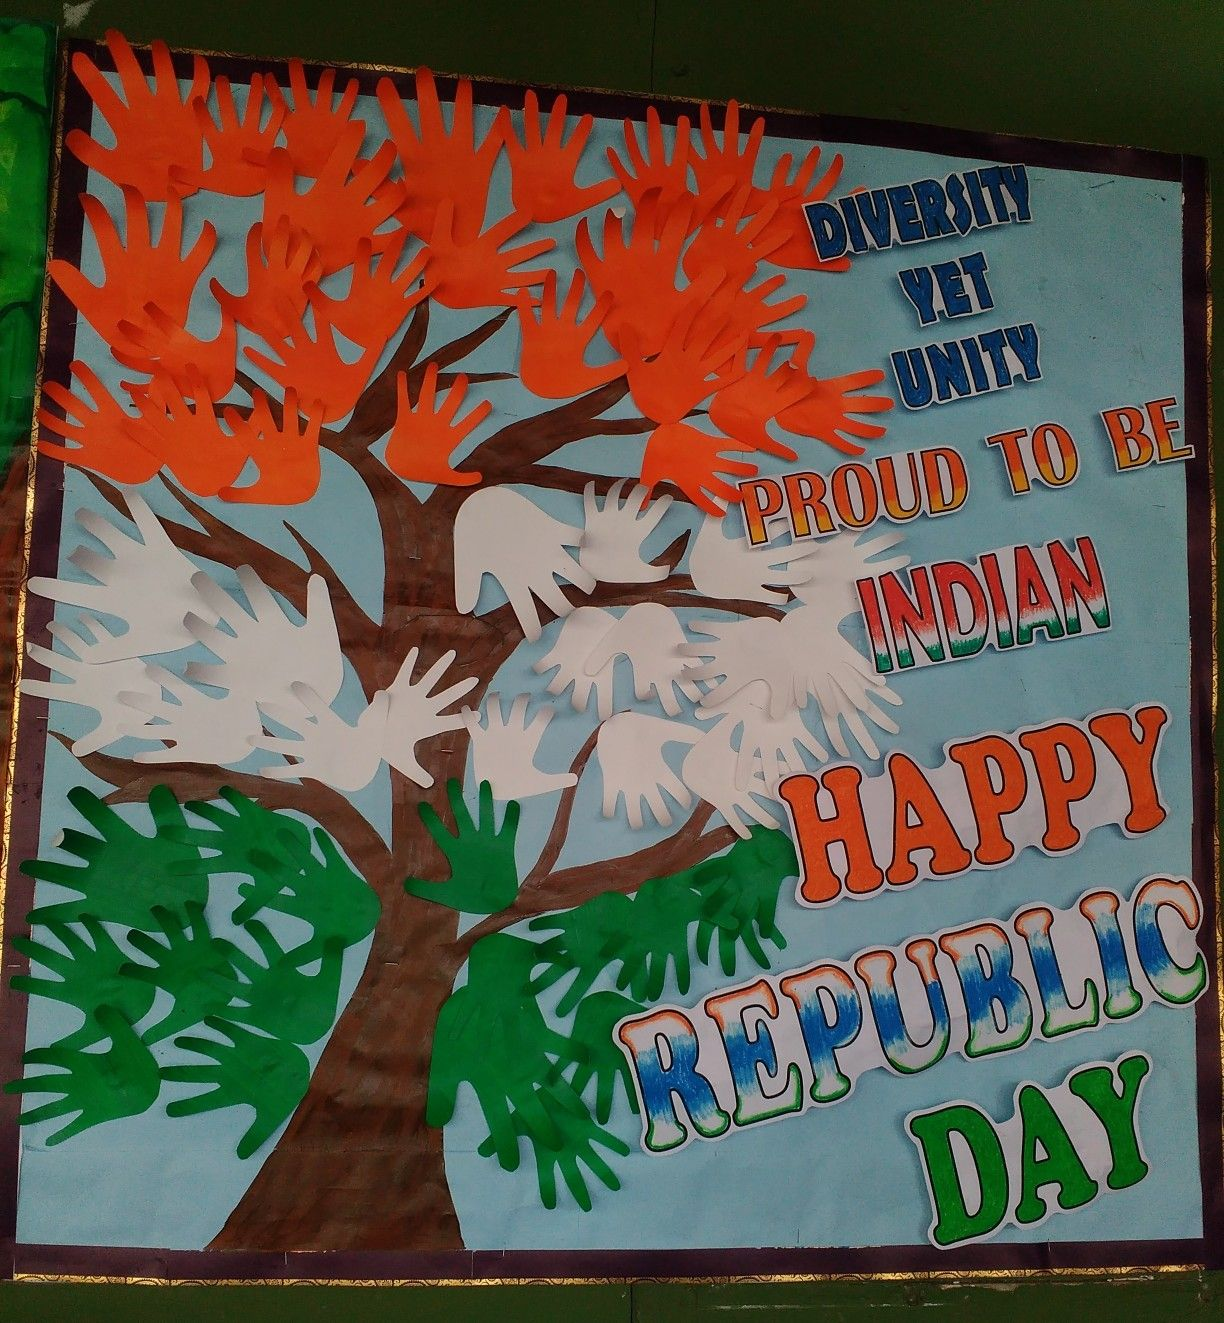 Republic day of india bulletin board ideas also notice decoration for independence google search rh pinterest